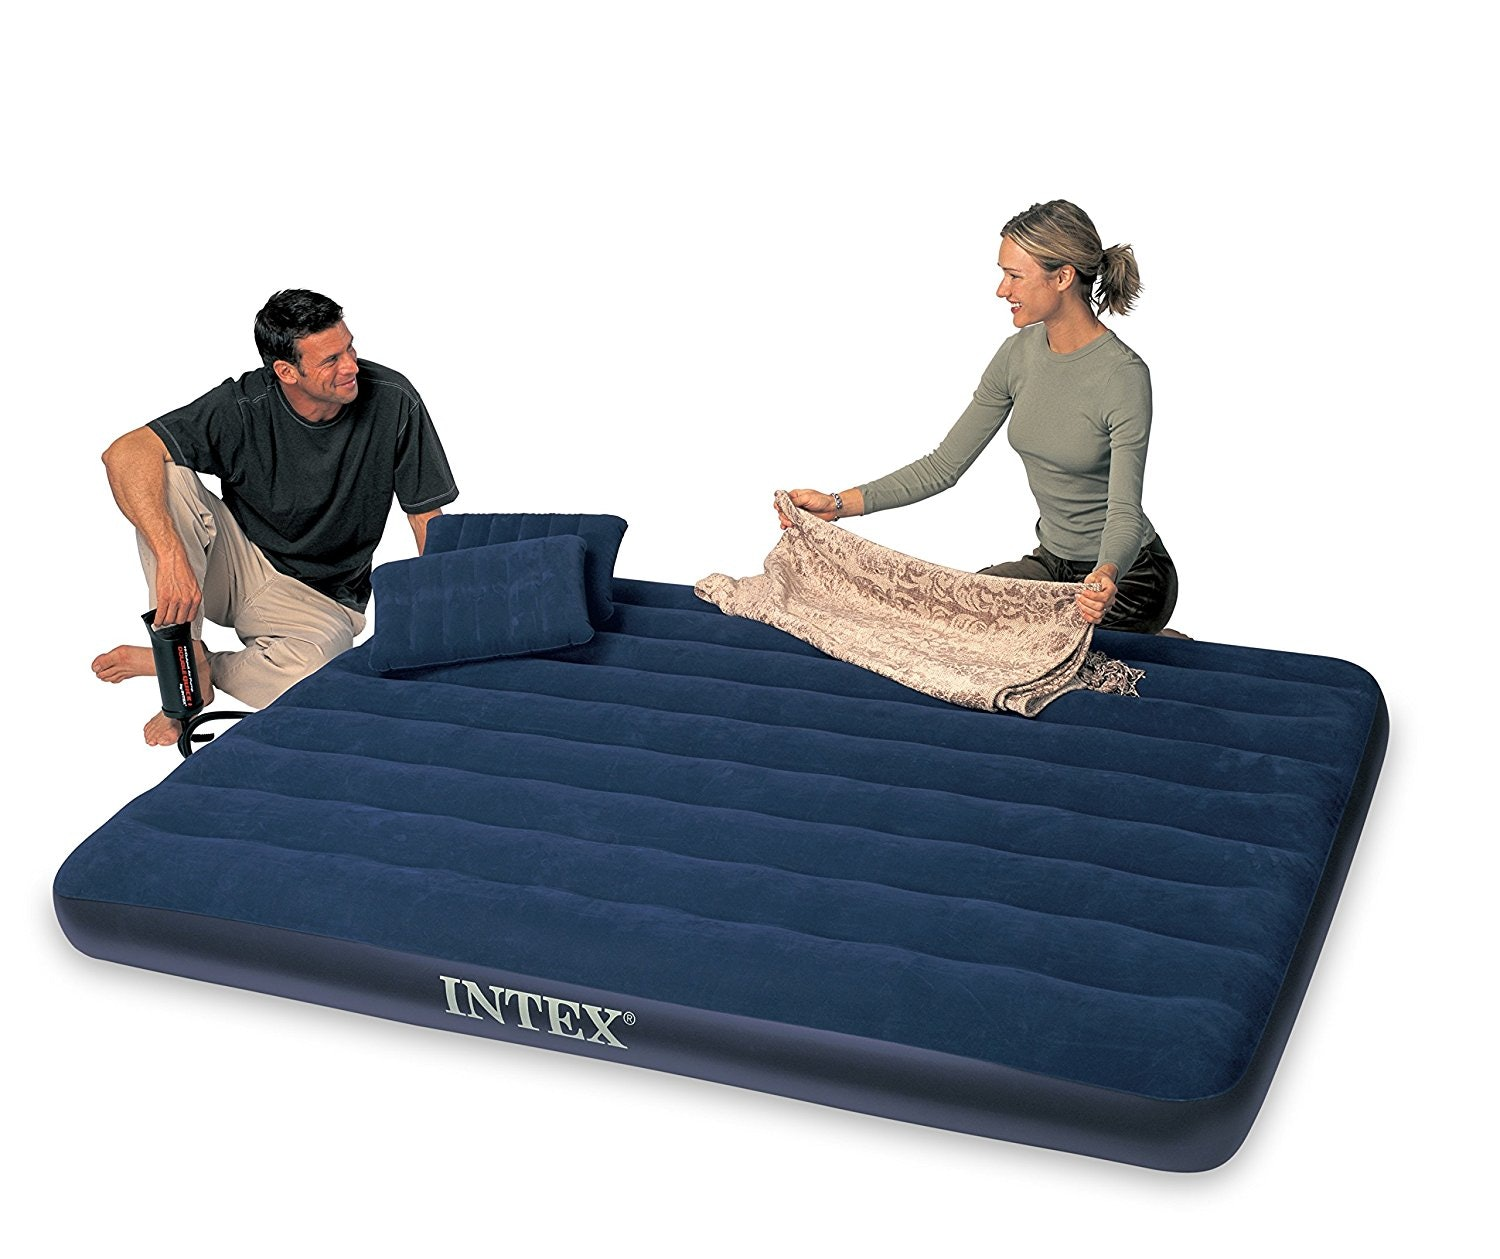 The 8 Best Air Mattresses